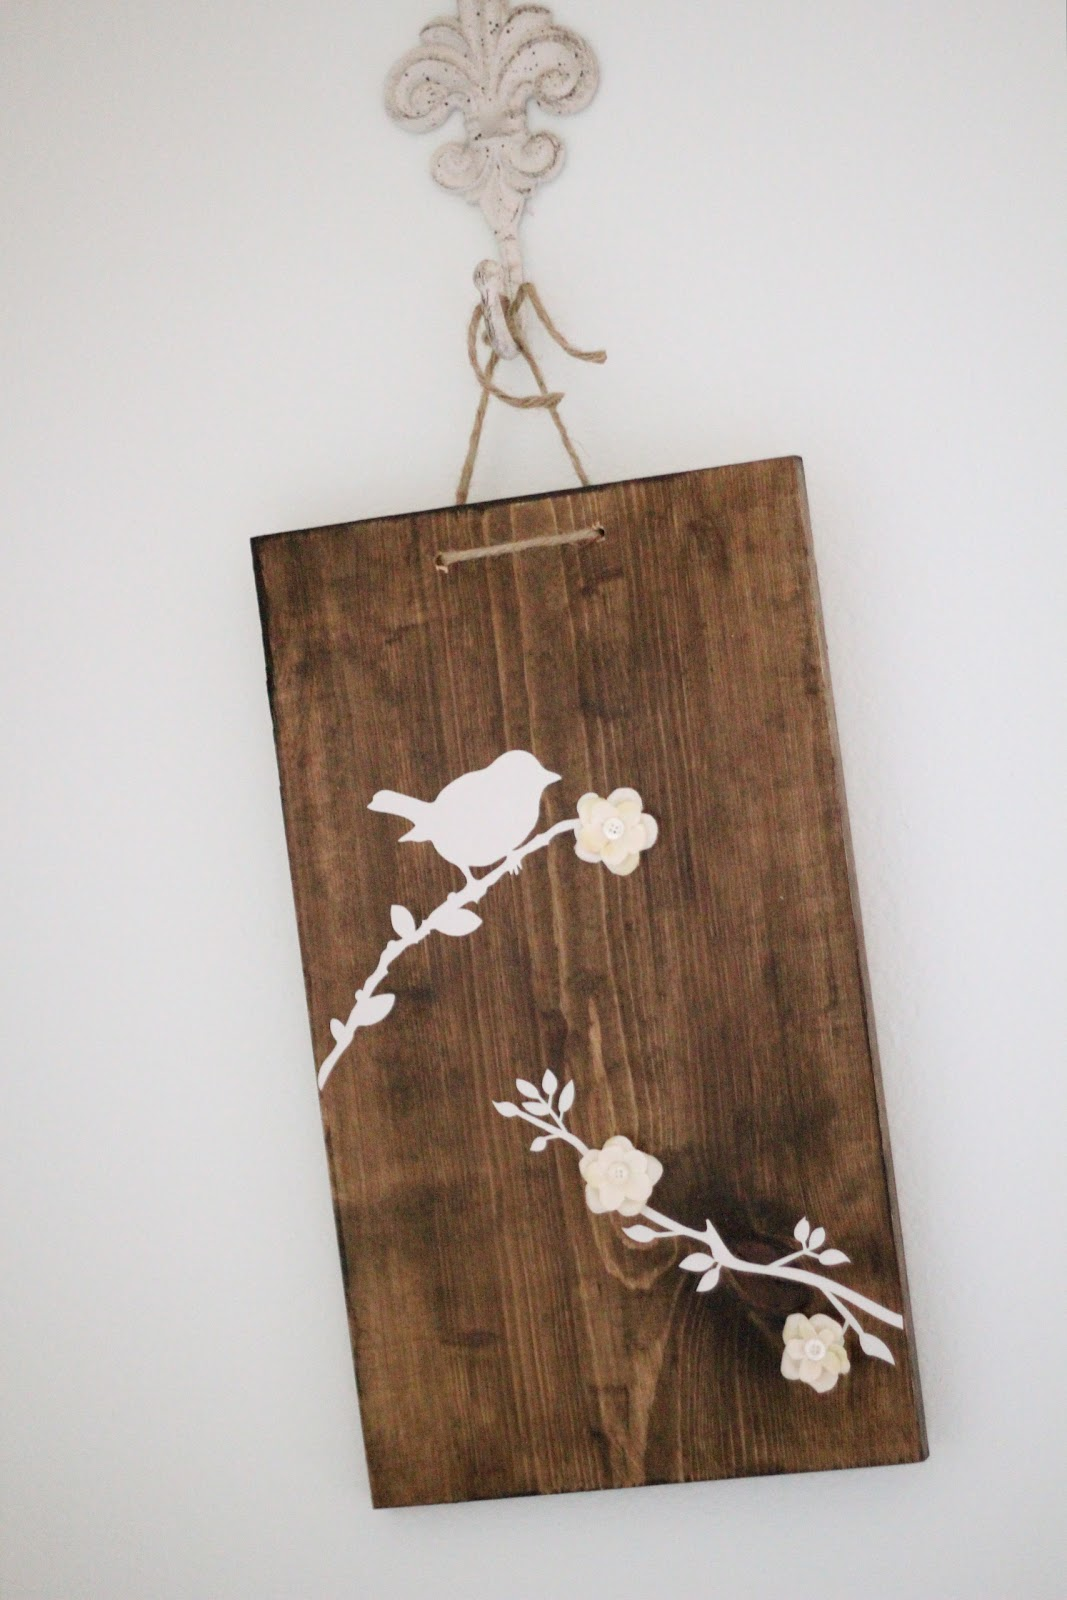 Wooden Birds and Branches Wall Art